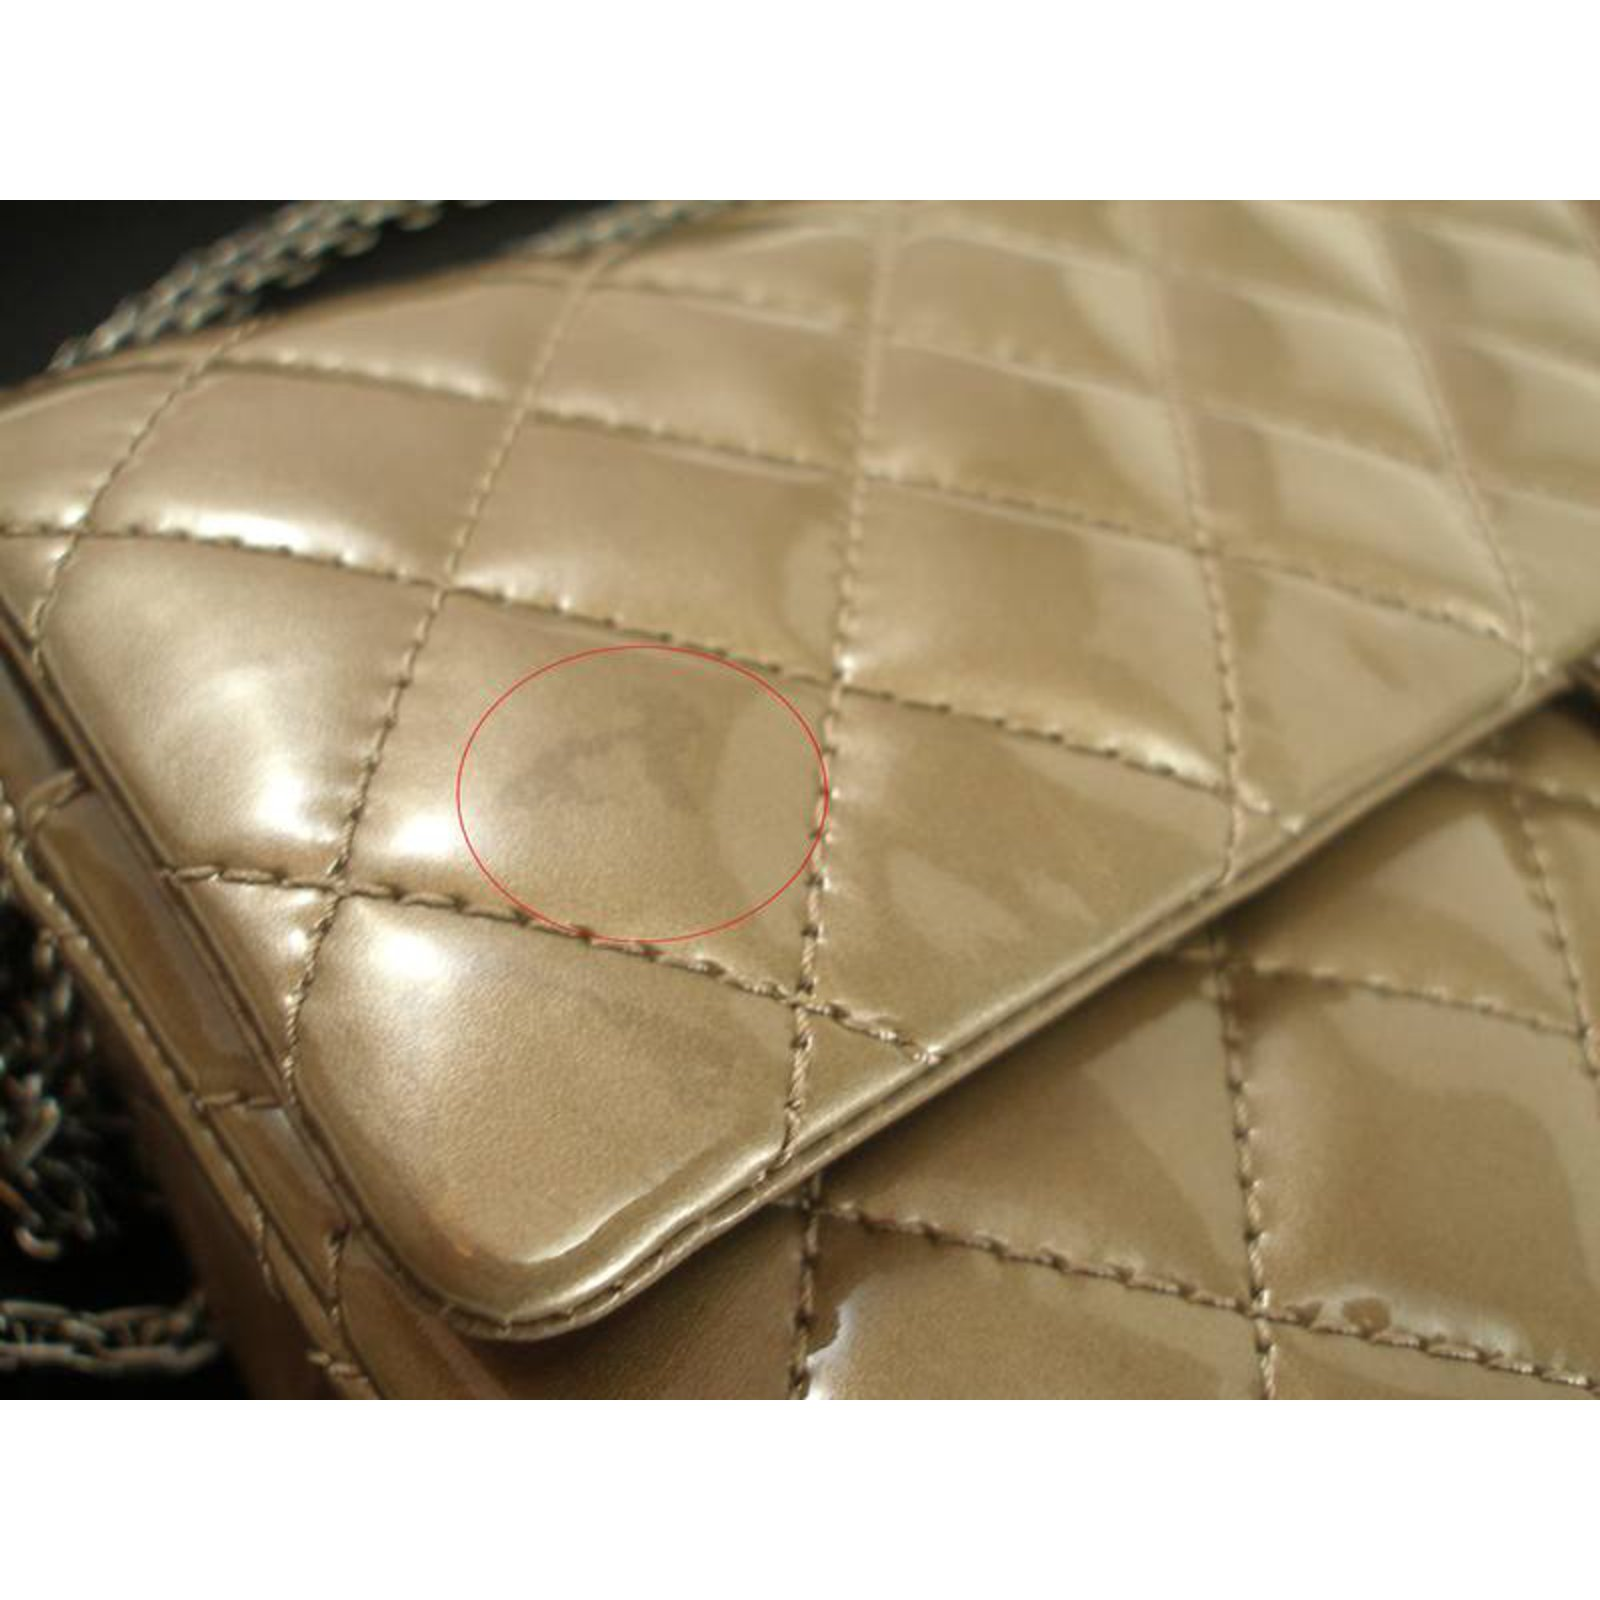 2925619ee52c Facebook · Pin This. Chanel Reissue 227 Handbags Patent leather Taupe ...